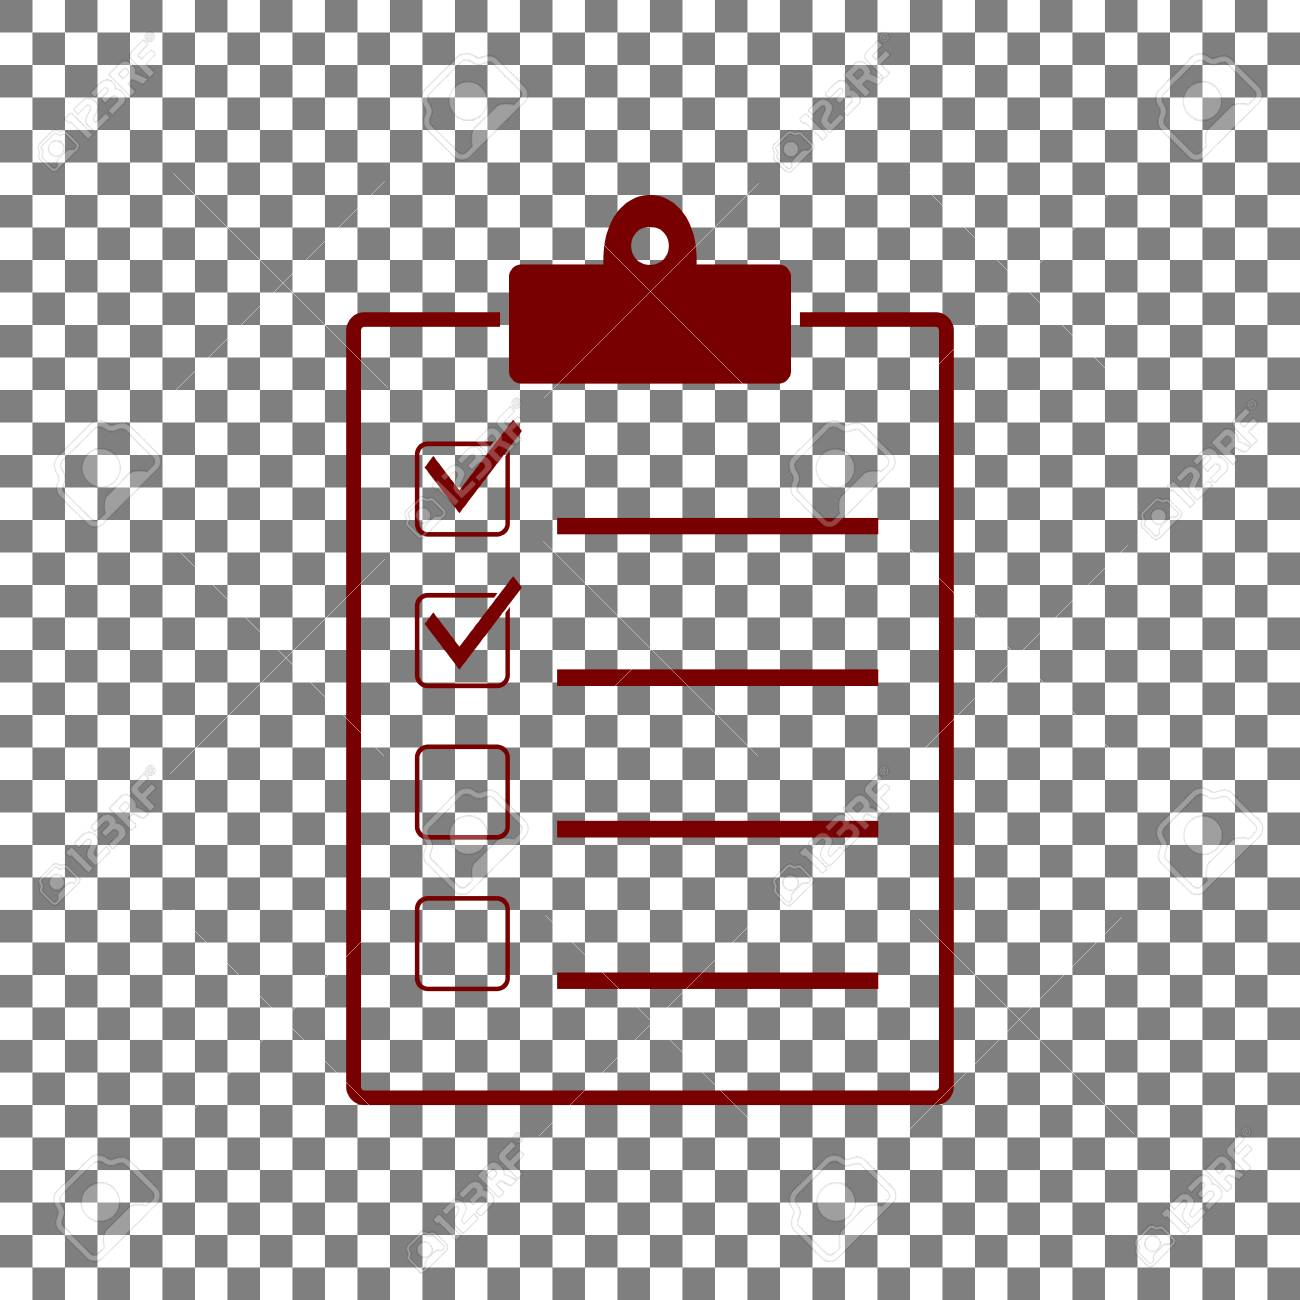 checklist sign illustration. maroon icon on transparent background